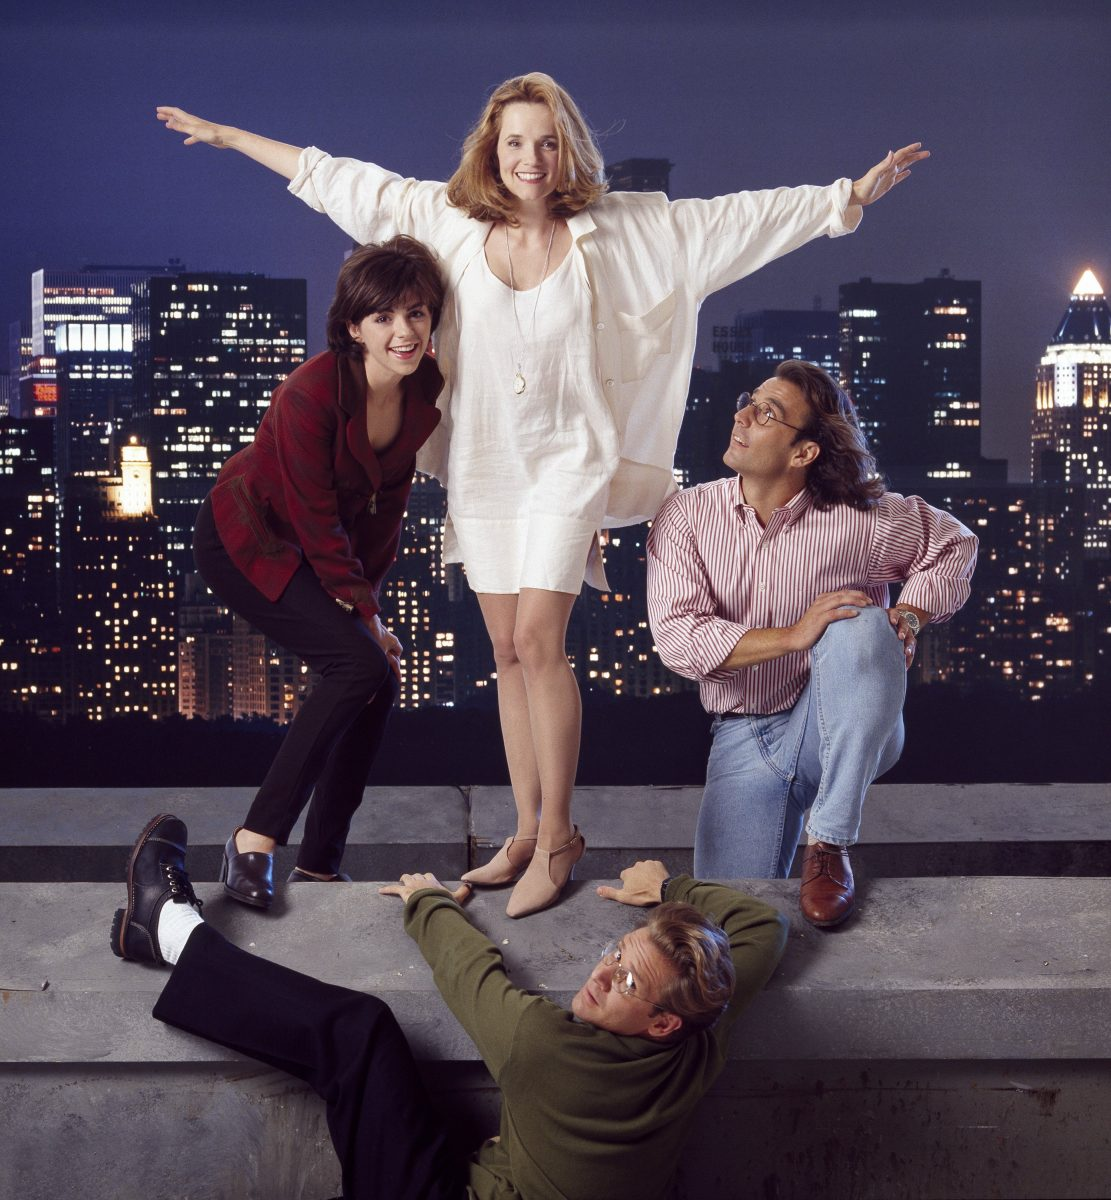 Lea Thompson as Caroline Duffy, Eric Lutes as Del Cassidy, Malcolm Gets as Richard Karinsky, Amy Pietz as Annie Viola Spadaro in 'Caroline in the City'